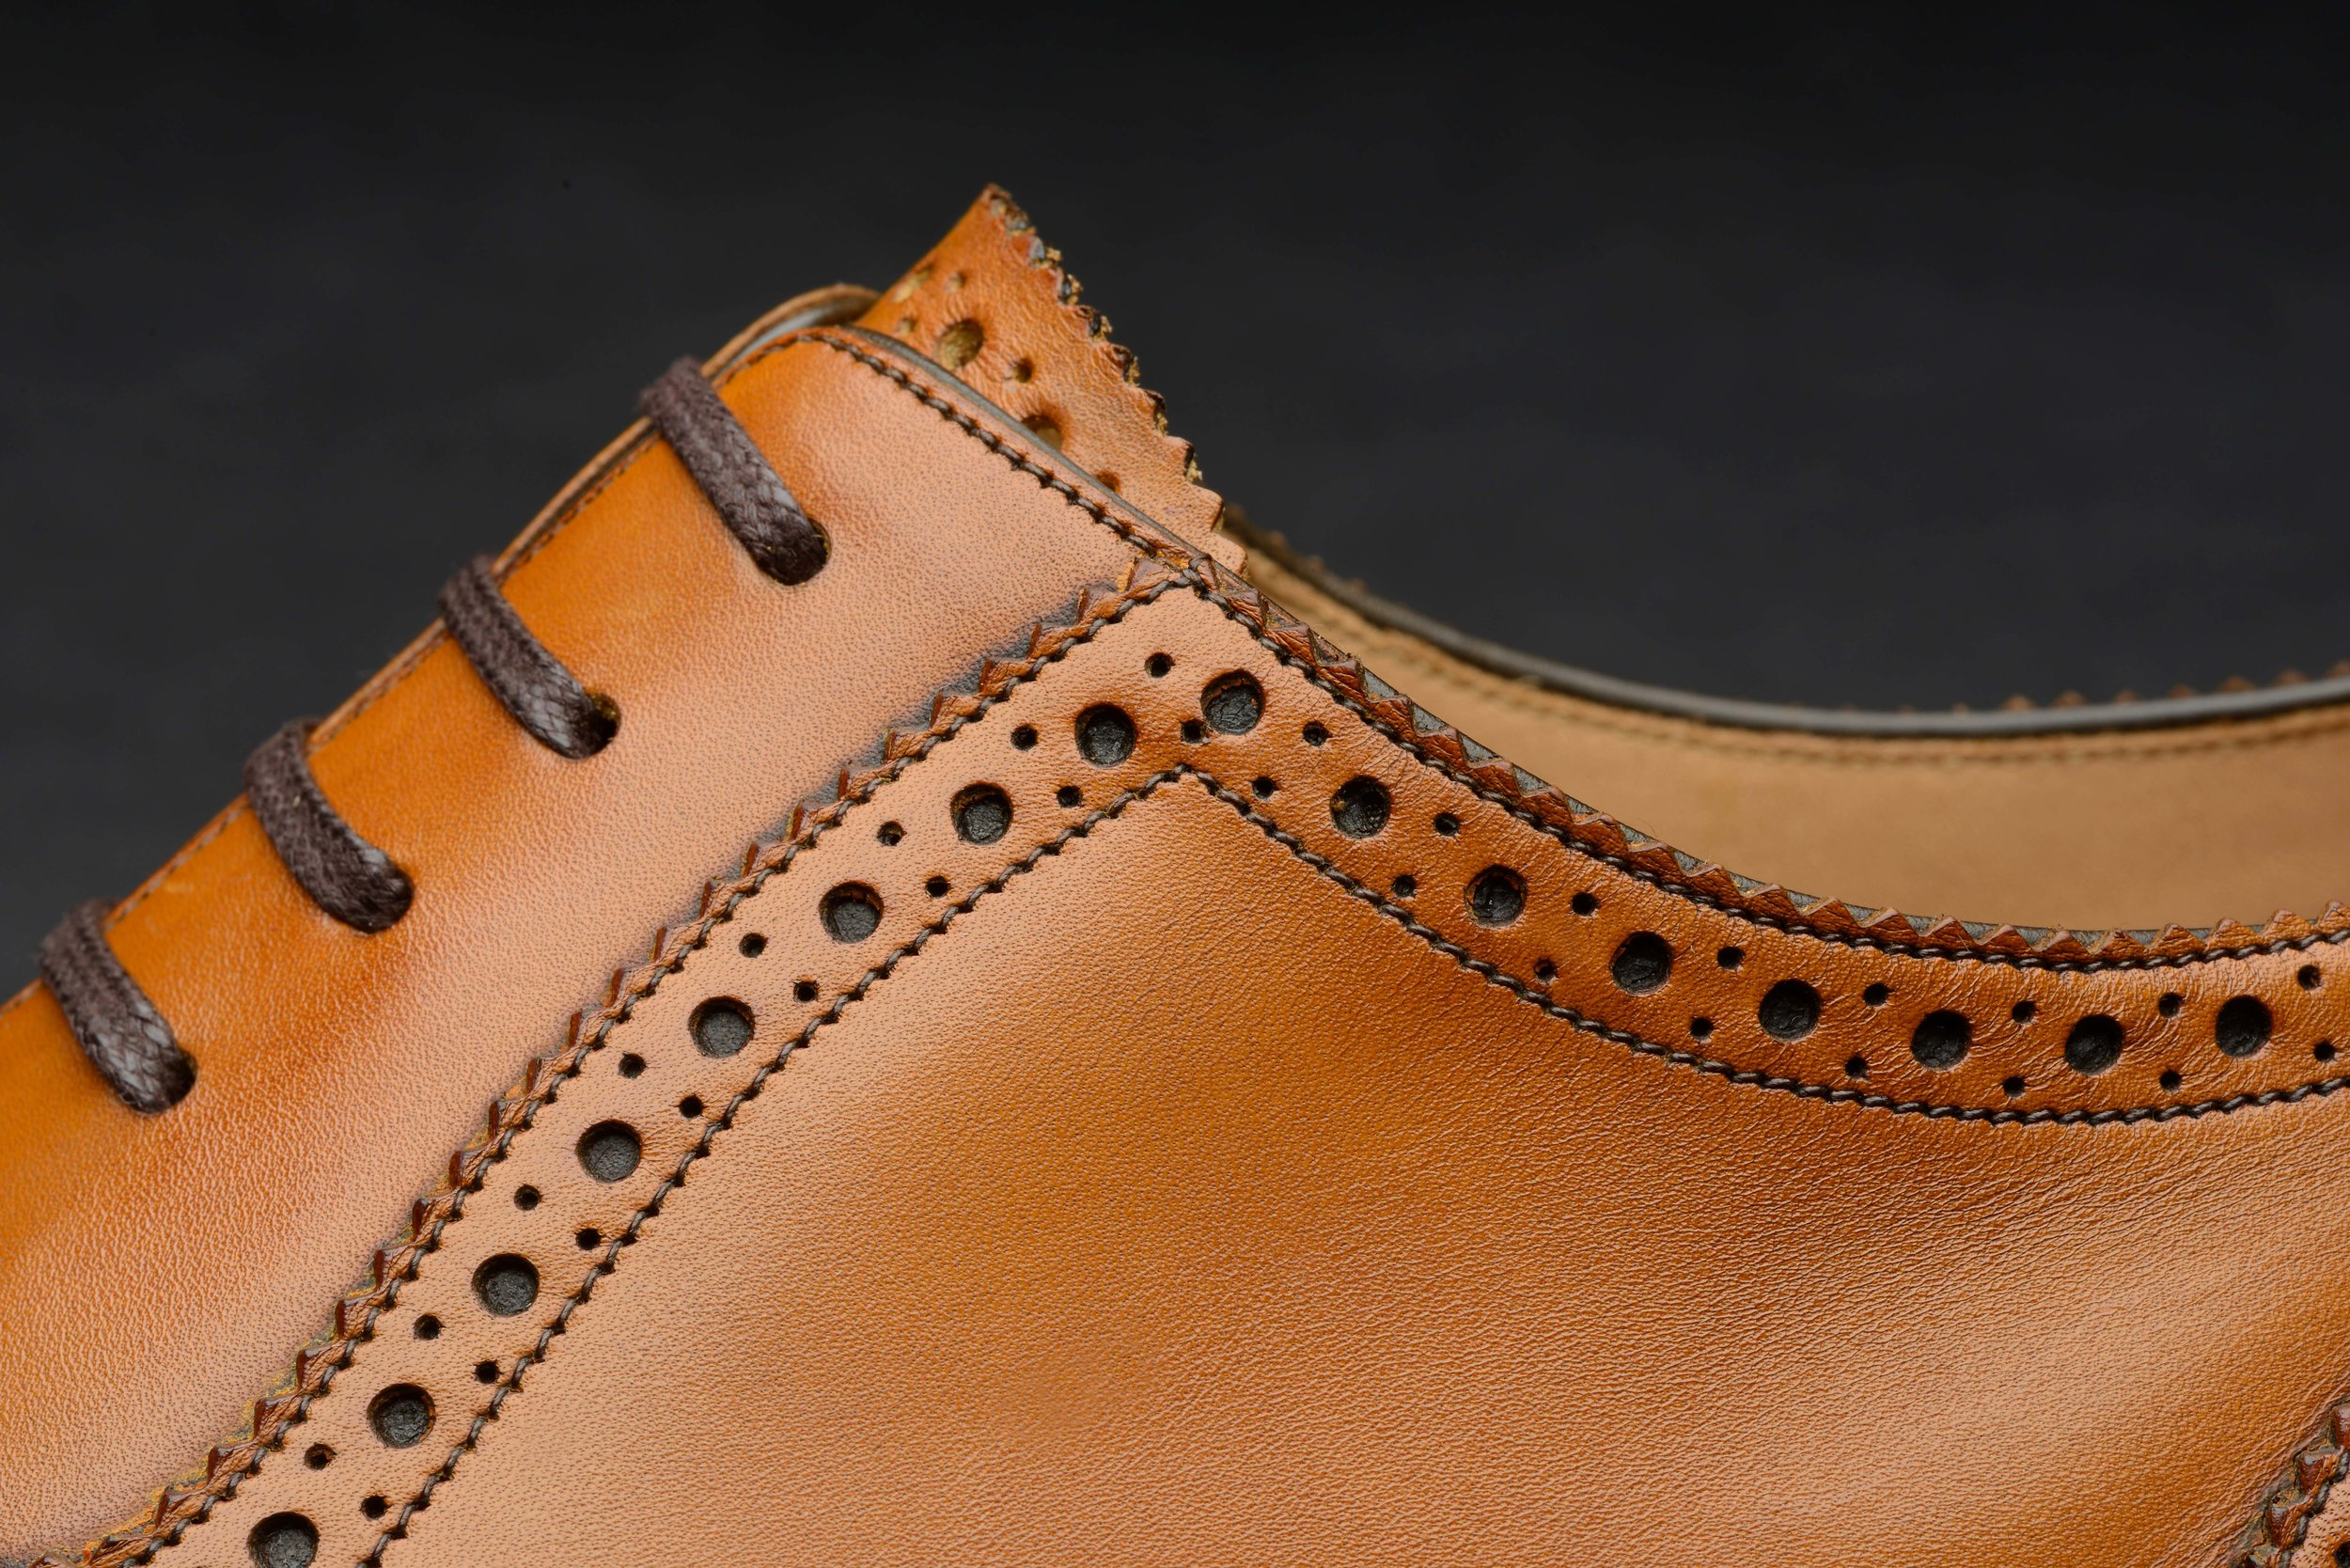 The brogue's punched detailing first created for wear in boggy terrain.